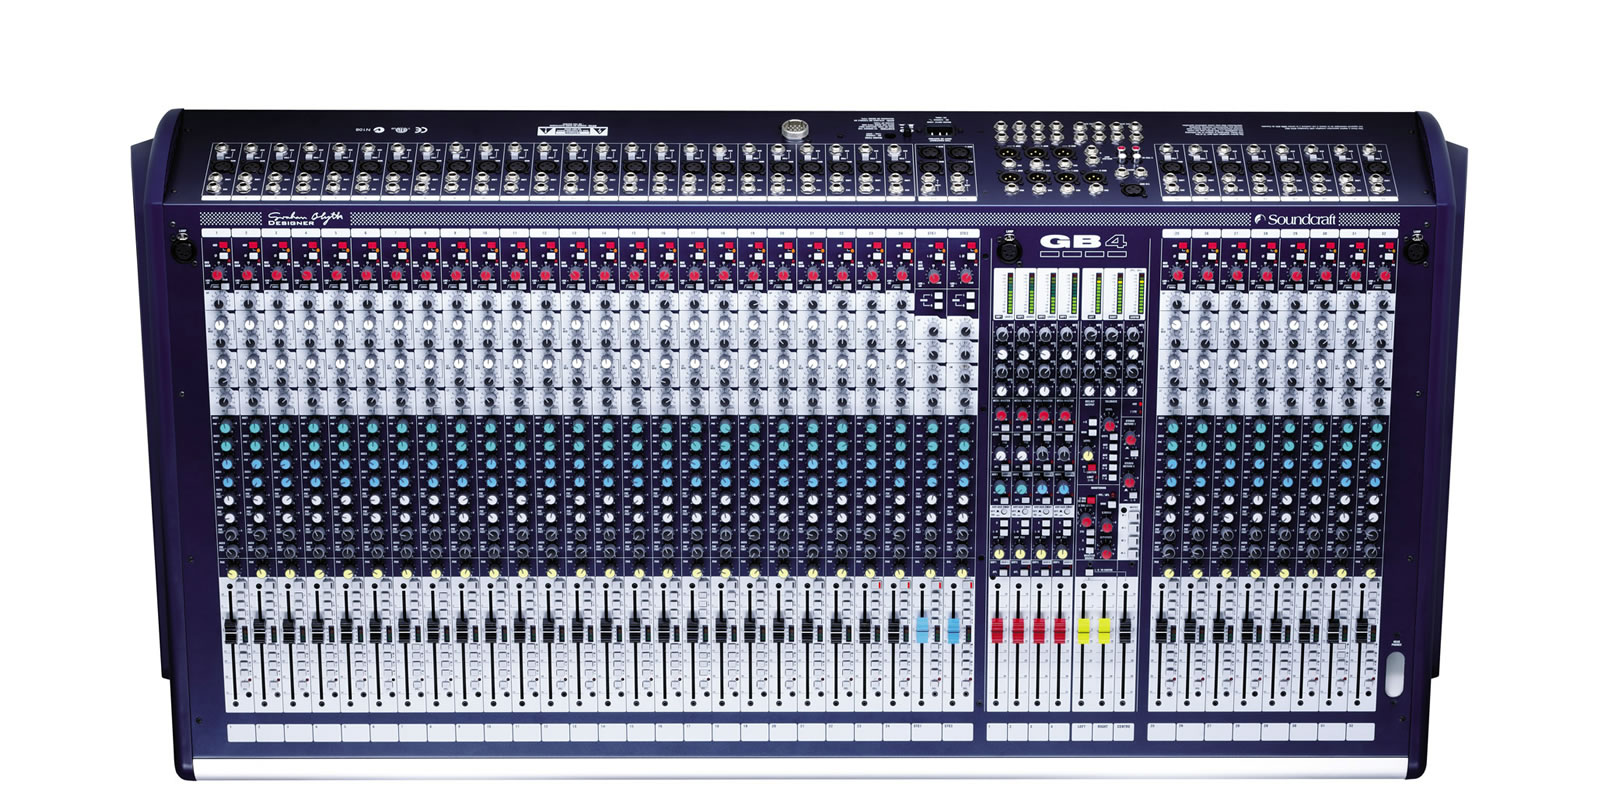 Gb4 Soundcraft Professional Audio Mixers Stereo Mixer For Microphone With 2 Channels